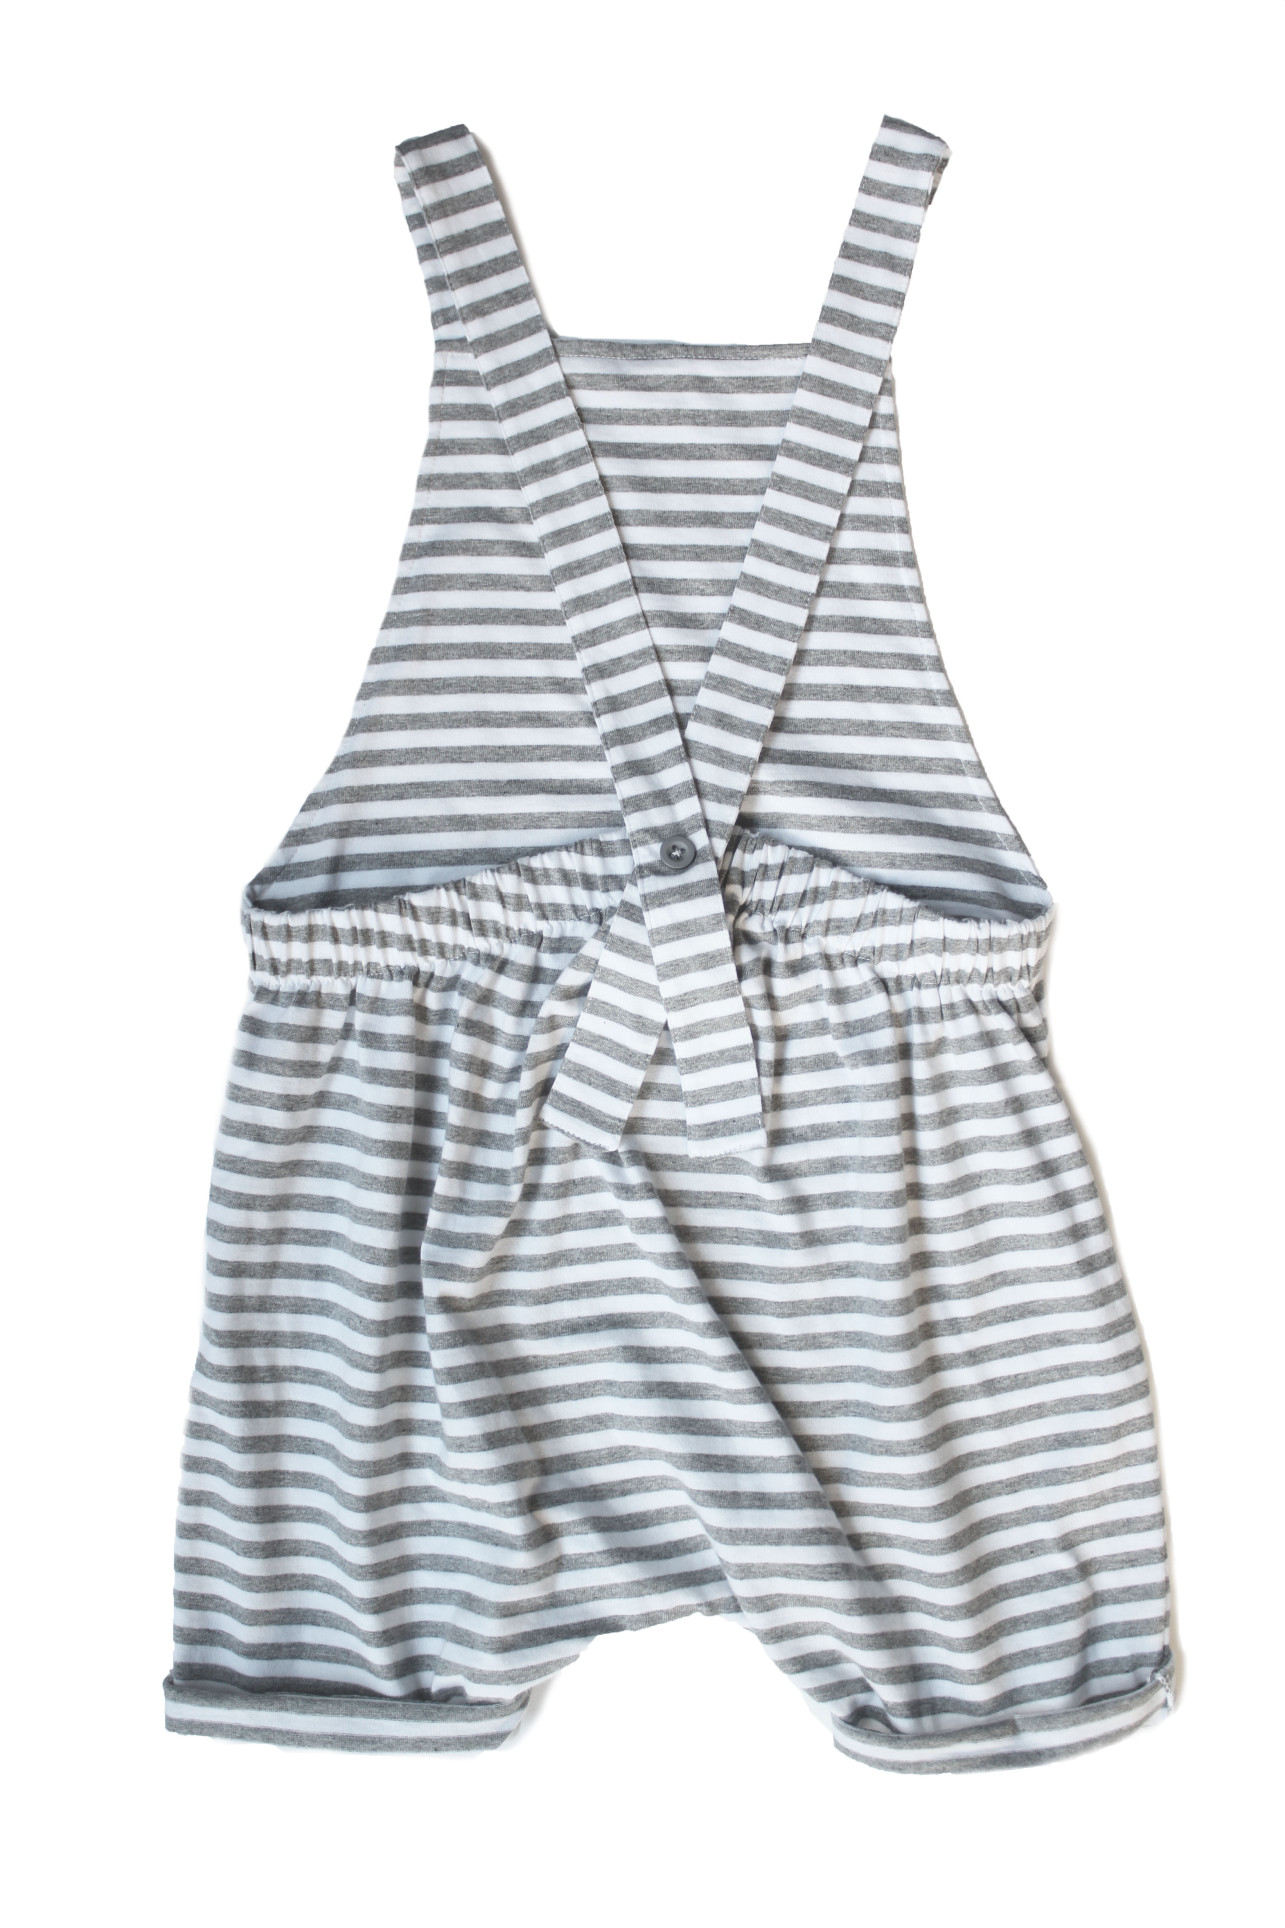 0701fa33 Pepe and Nika Gray Label Niederlande Kindermode Basics Organic fair-trade  Baumwolle Latzhose Overall gestreift ...